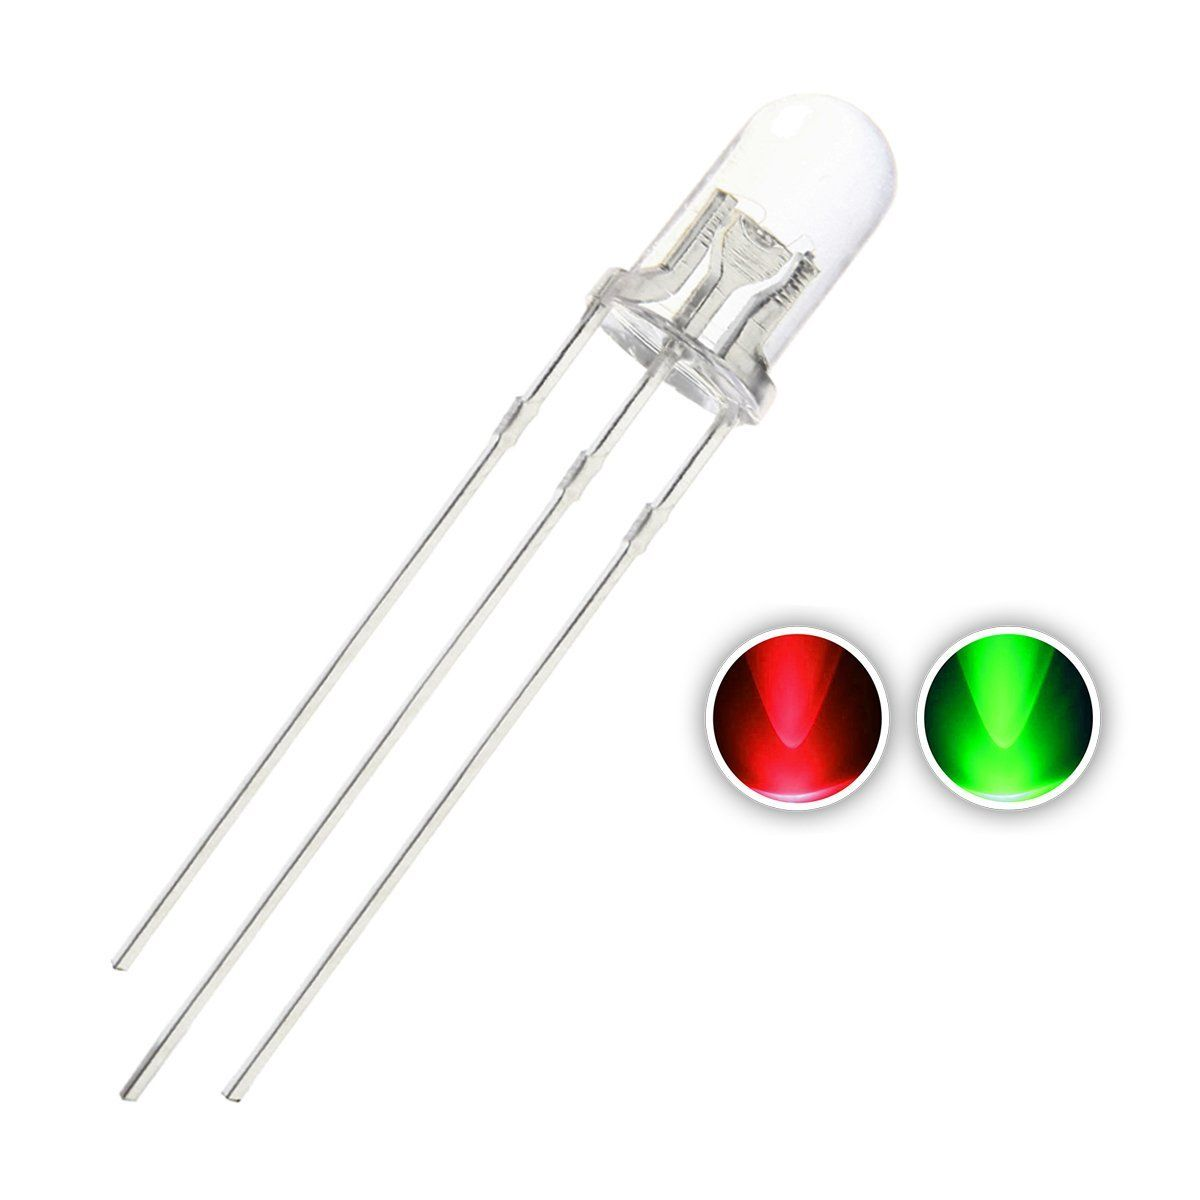 Chanzon 100pcs 5mm Led Light Emitting Diode Lamp Red And Green Bi Color Common Anode 3pins Round Clear Lens Light Emitting Diode Green Led Indicator Lights